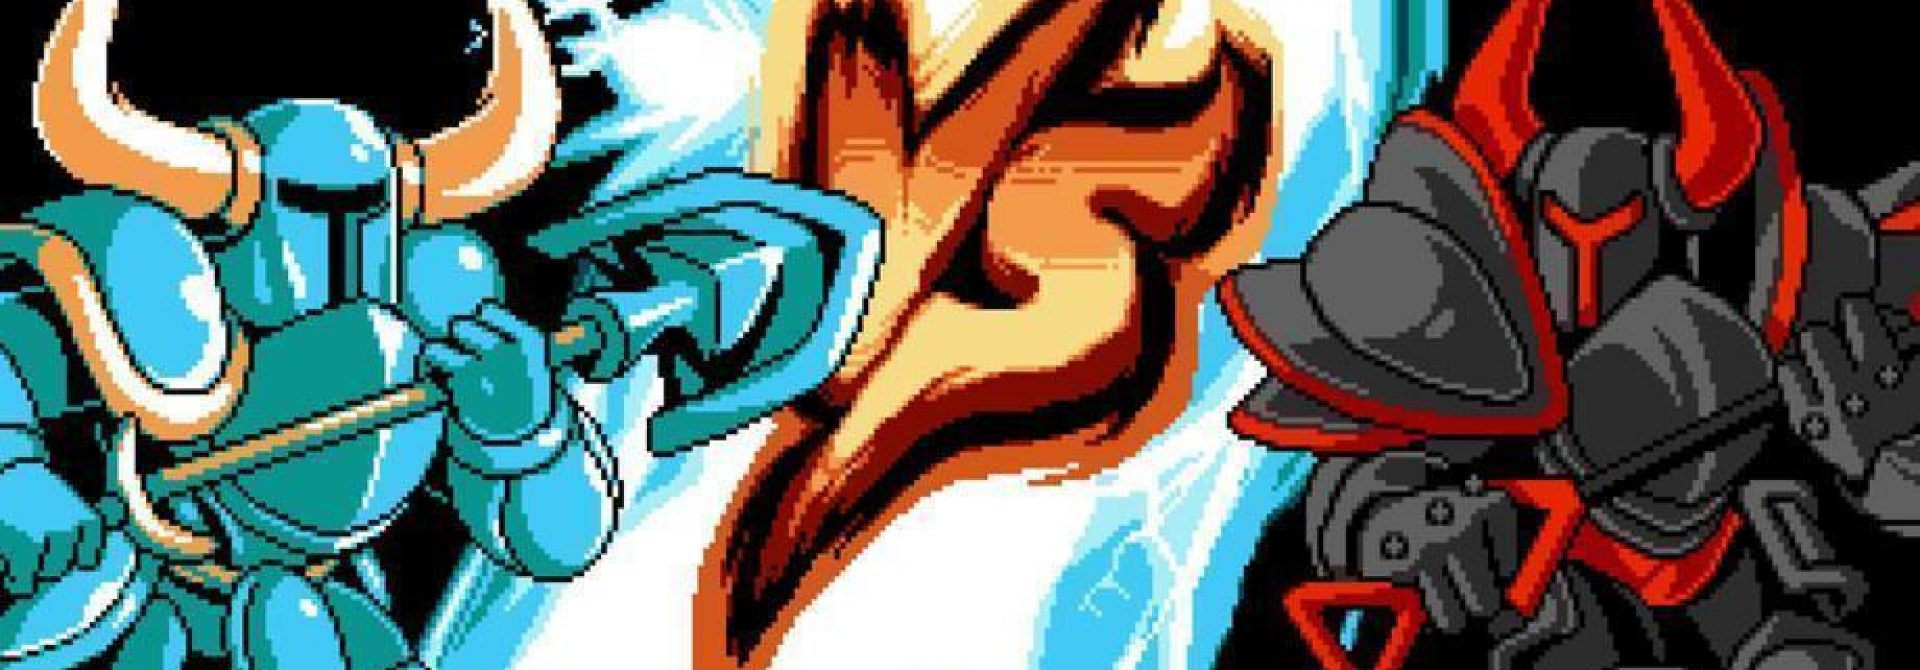 Shovel Knight Gets Its Final Expansion Next Spring